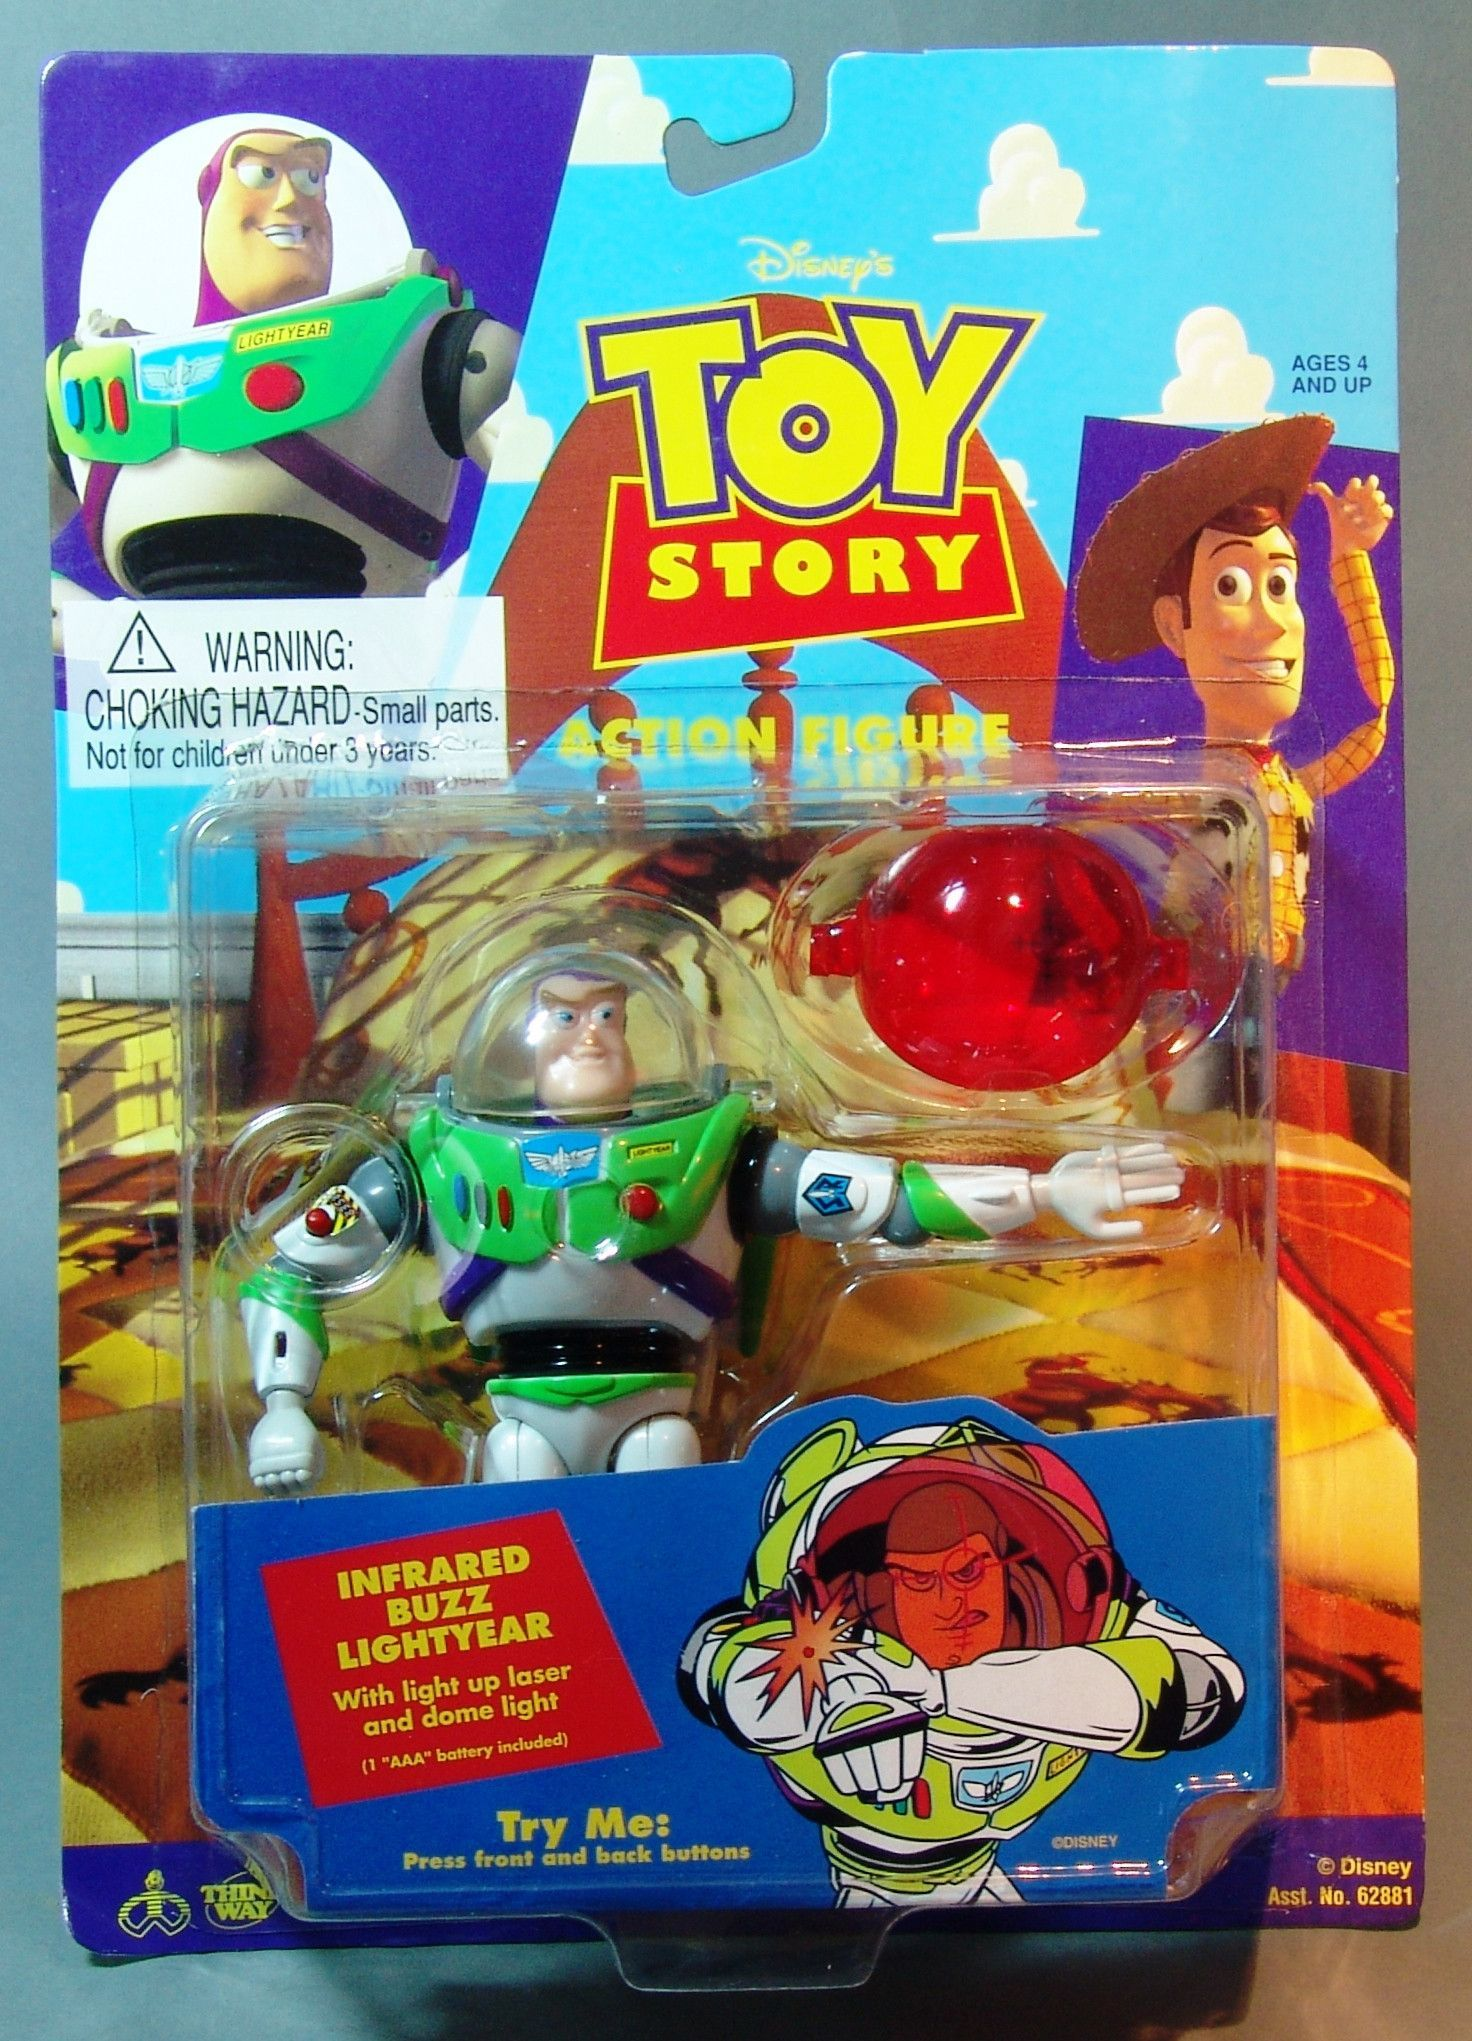 1995 toy story infrared buzz lightyear action figure